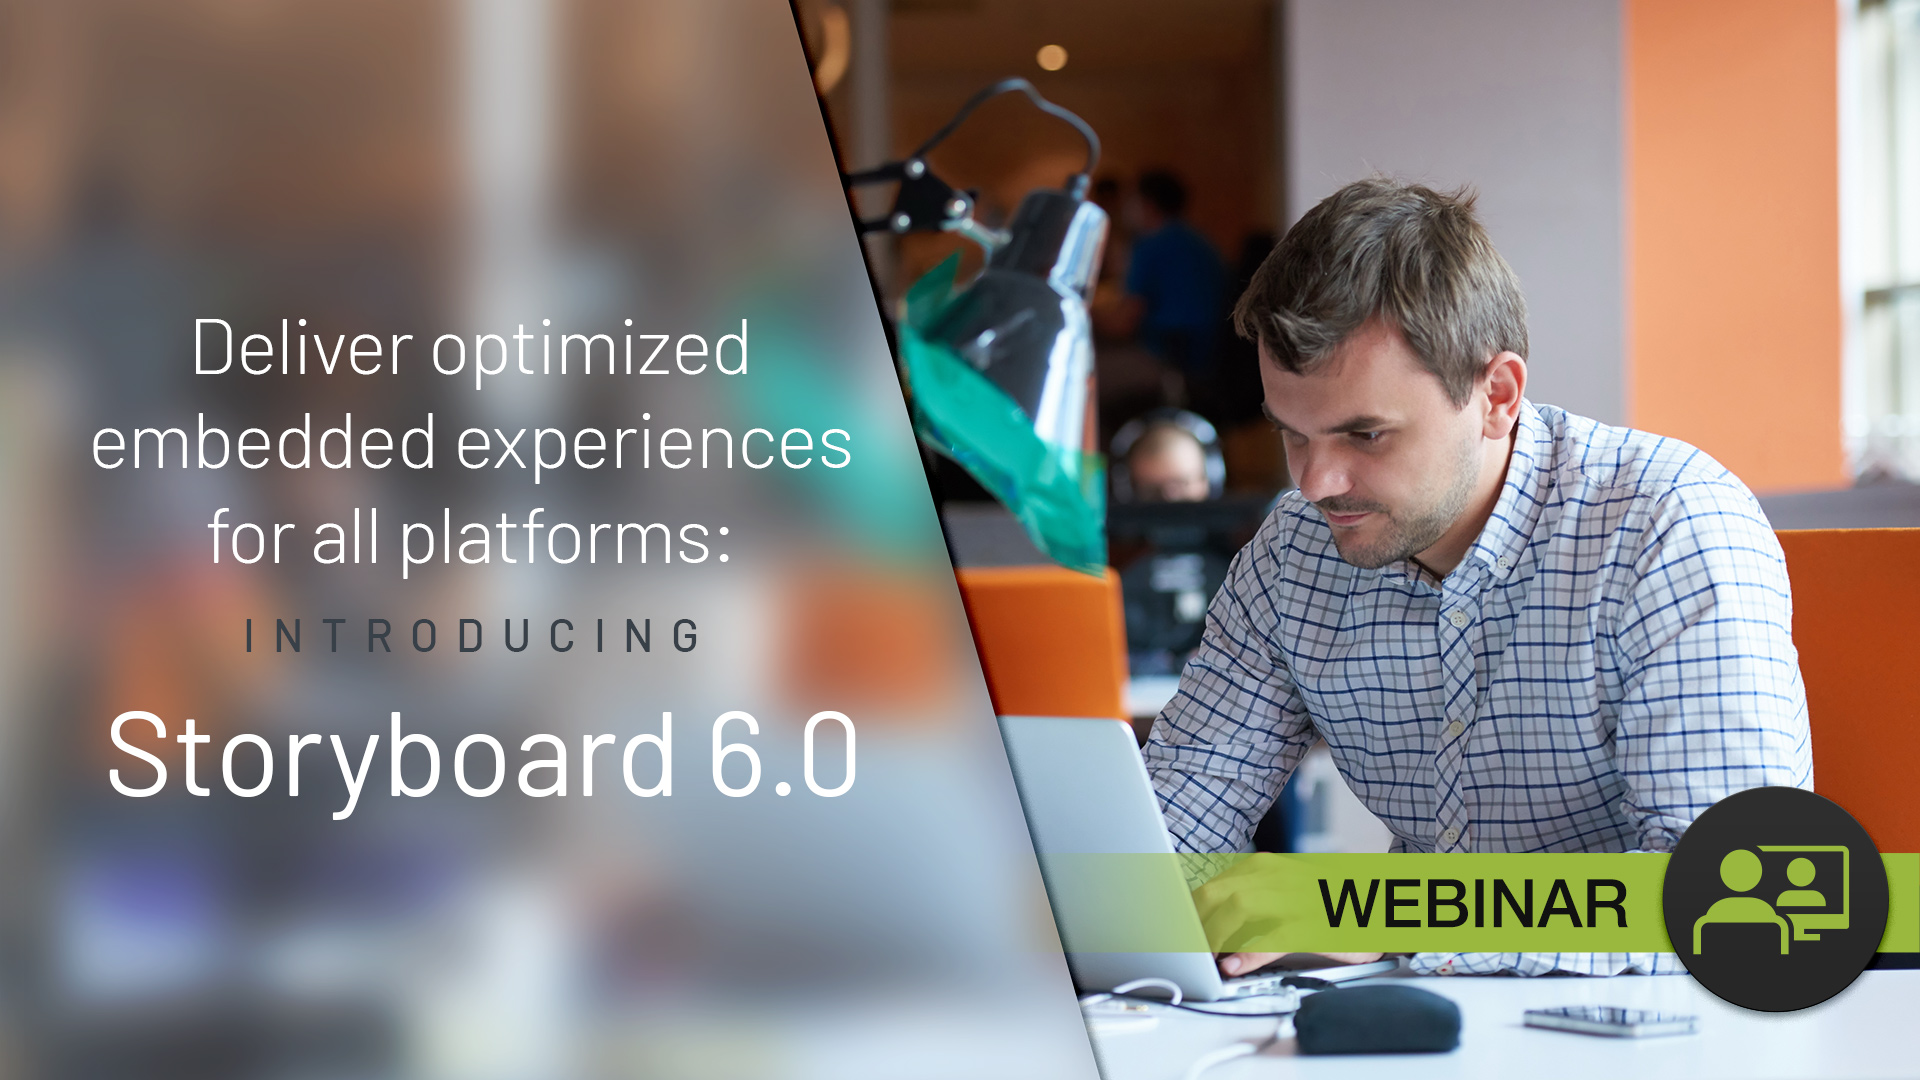 Deliver optimized embedded experiences for all platforms_ introducing Storyboard 6.0